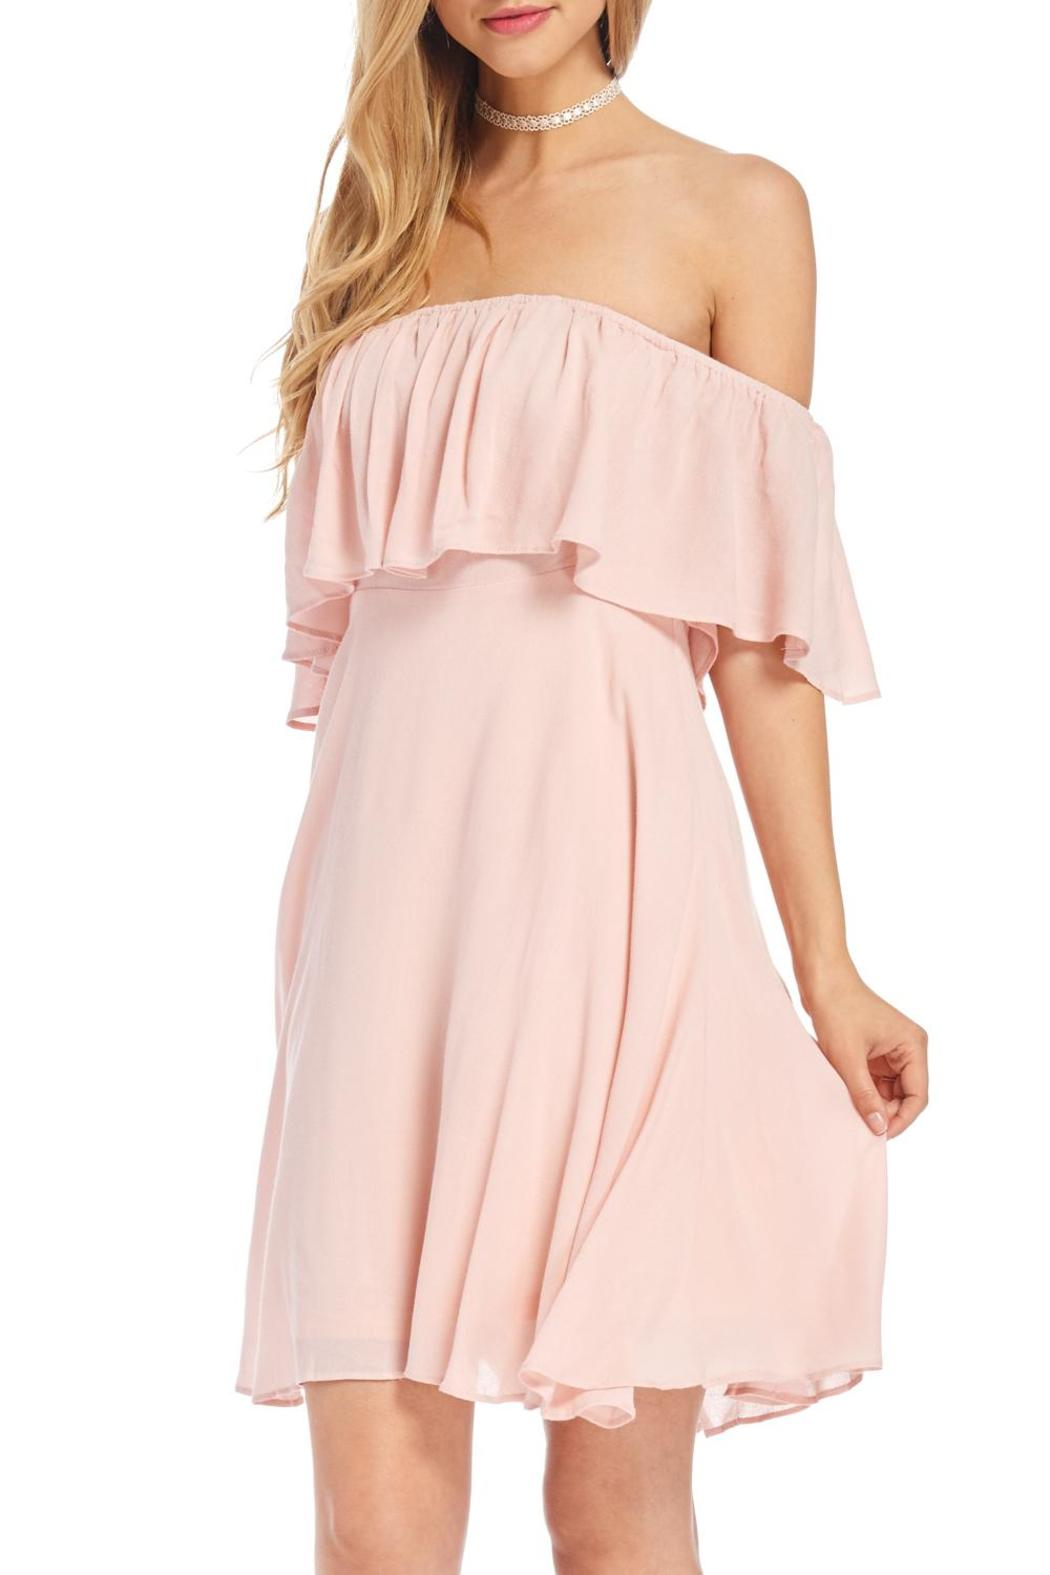 HYFVE Pink Off Shoulder Dress from Wisconsin by Apricot Lane - Wisconsin Dells u2014 Shoptiques